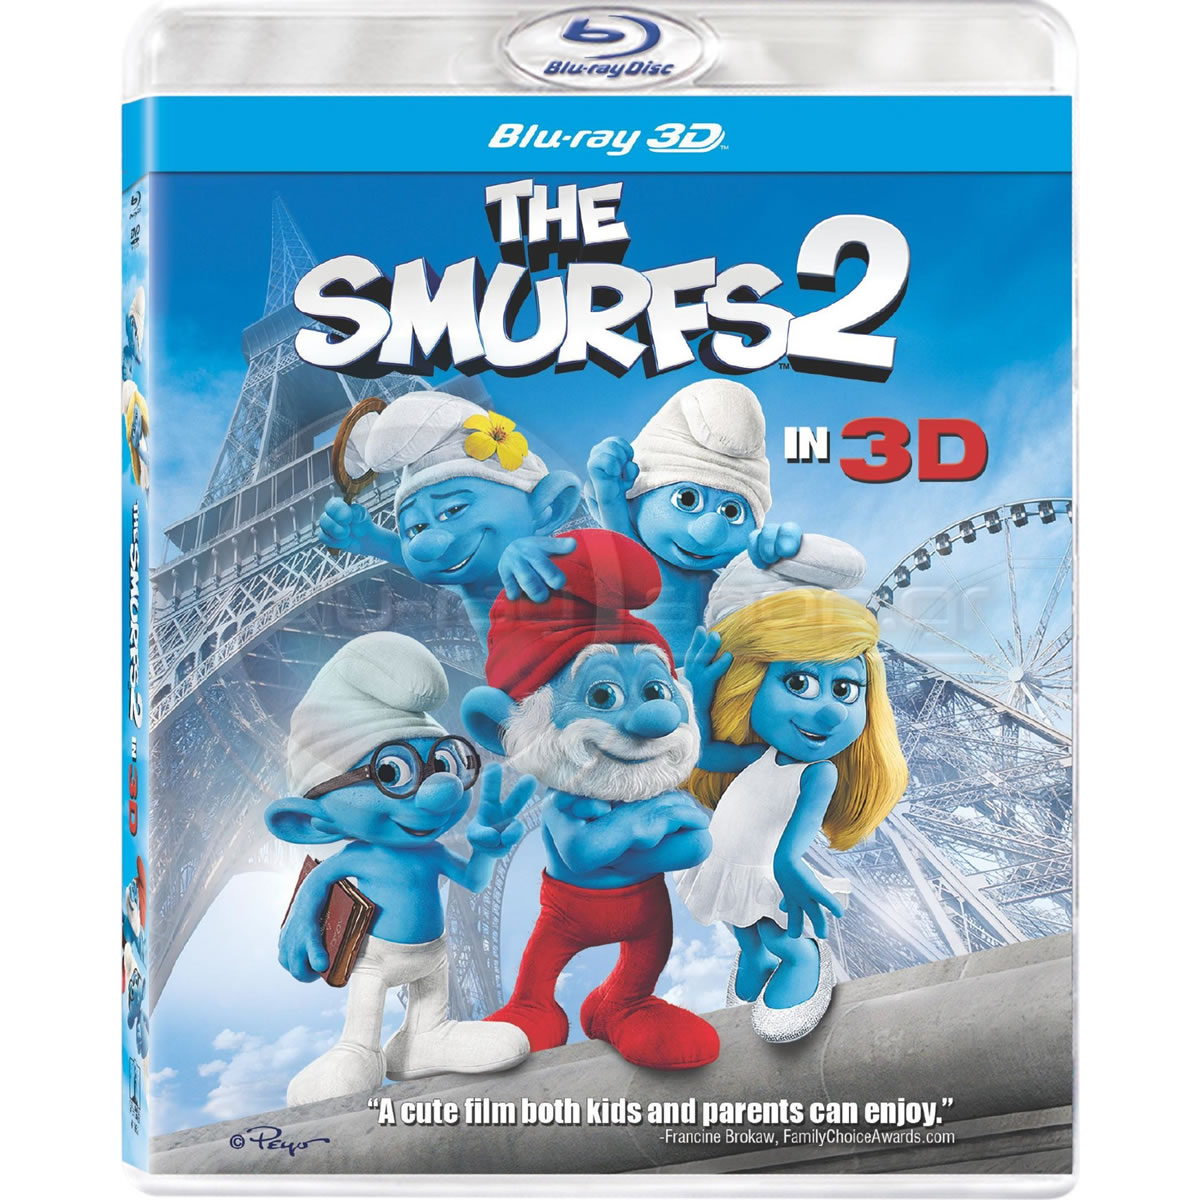 THE SMURFS 2 3D - �� ����������� 2 3D (BLU-RAY 3D) & ���������������